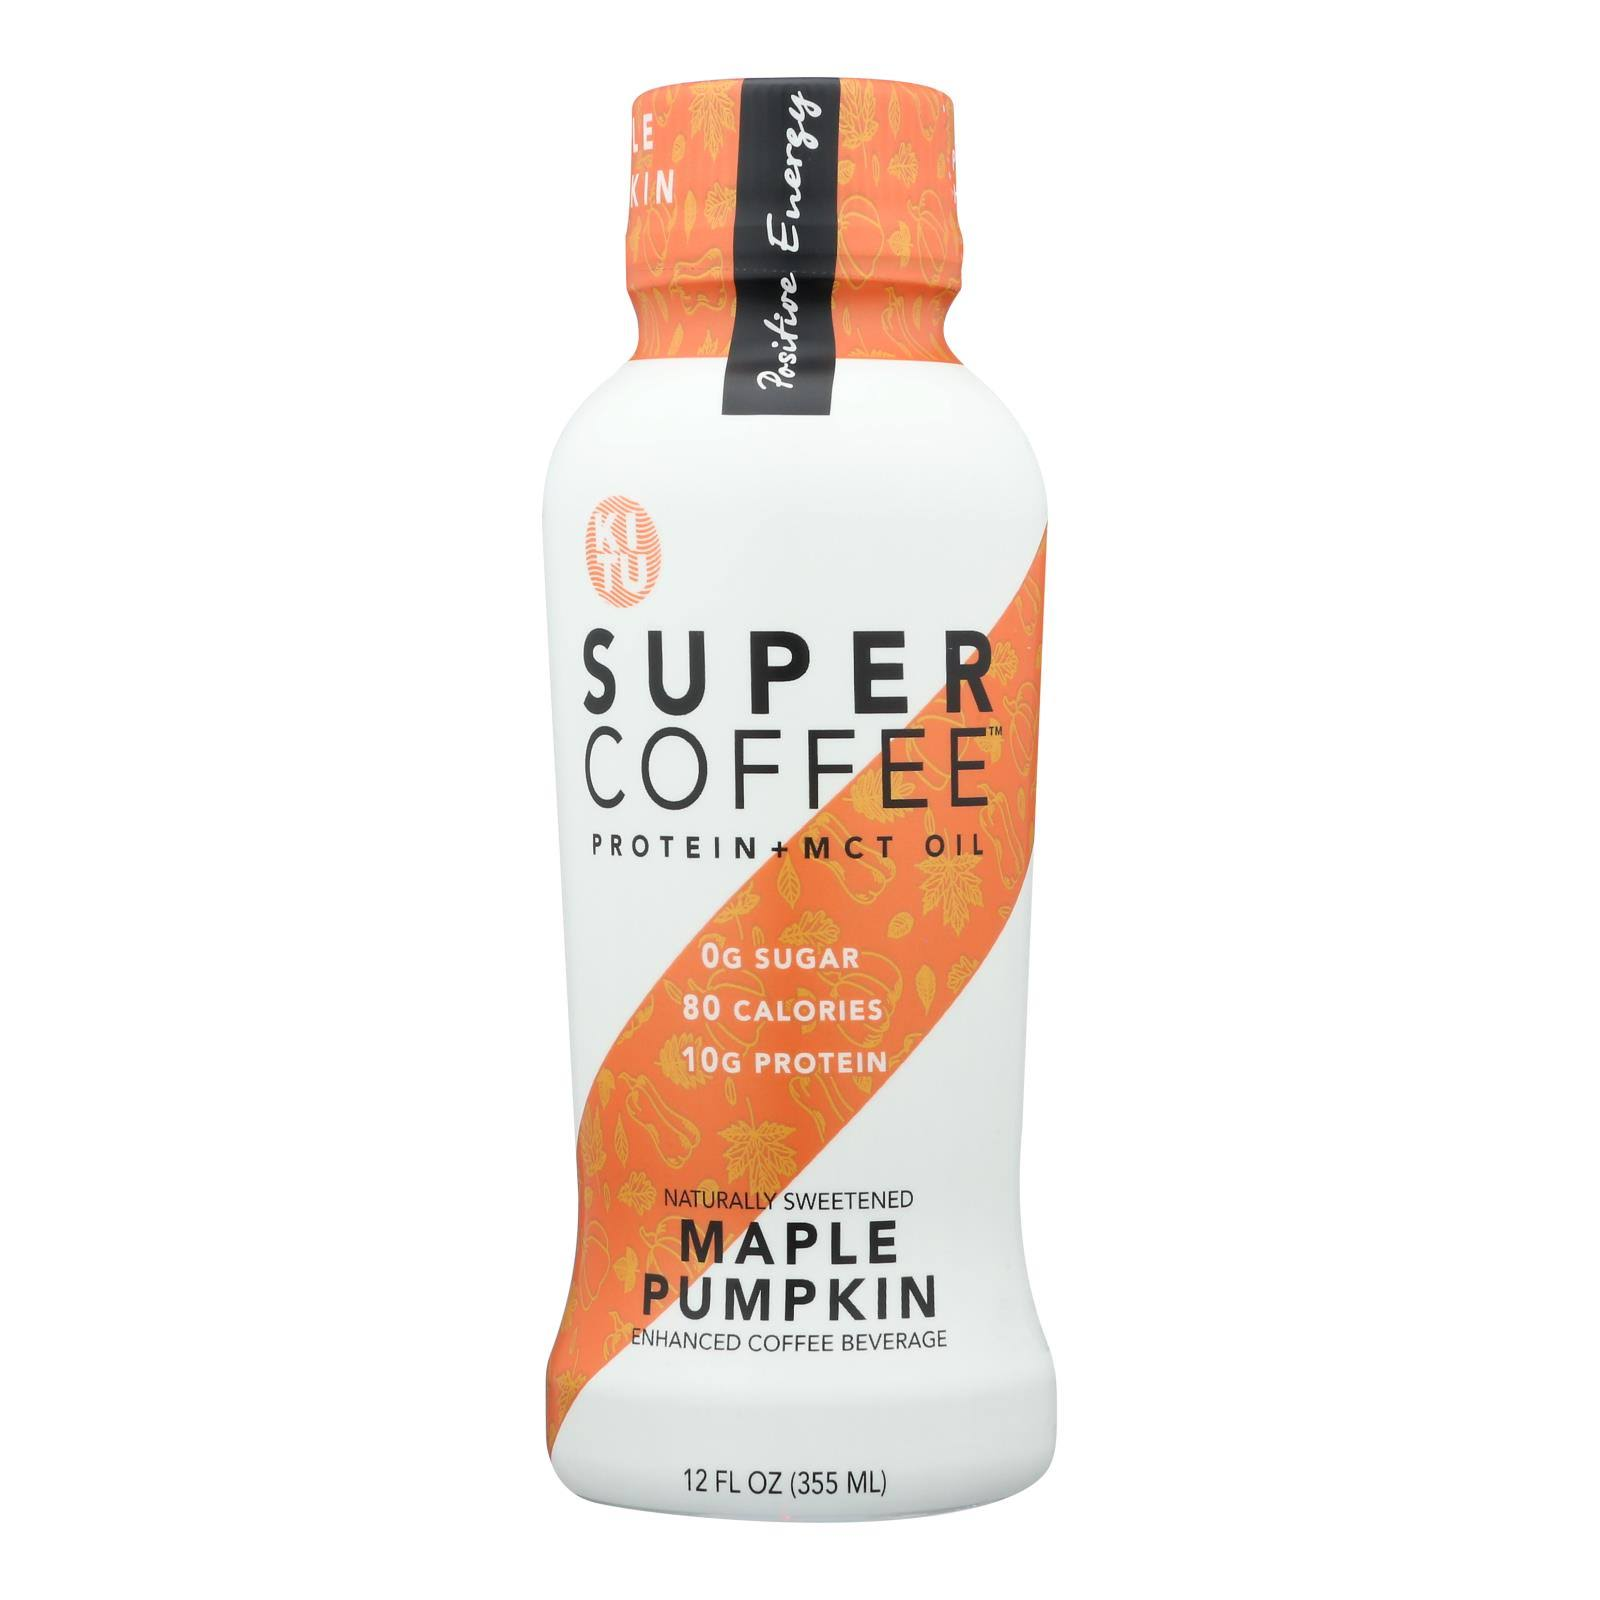 Kitu Super Coffee Maple Pumpkin Enhanced Coffee Beverage - 355ml